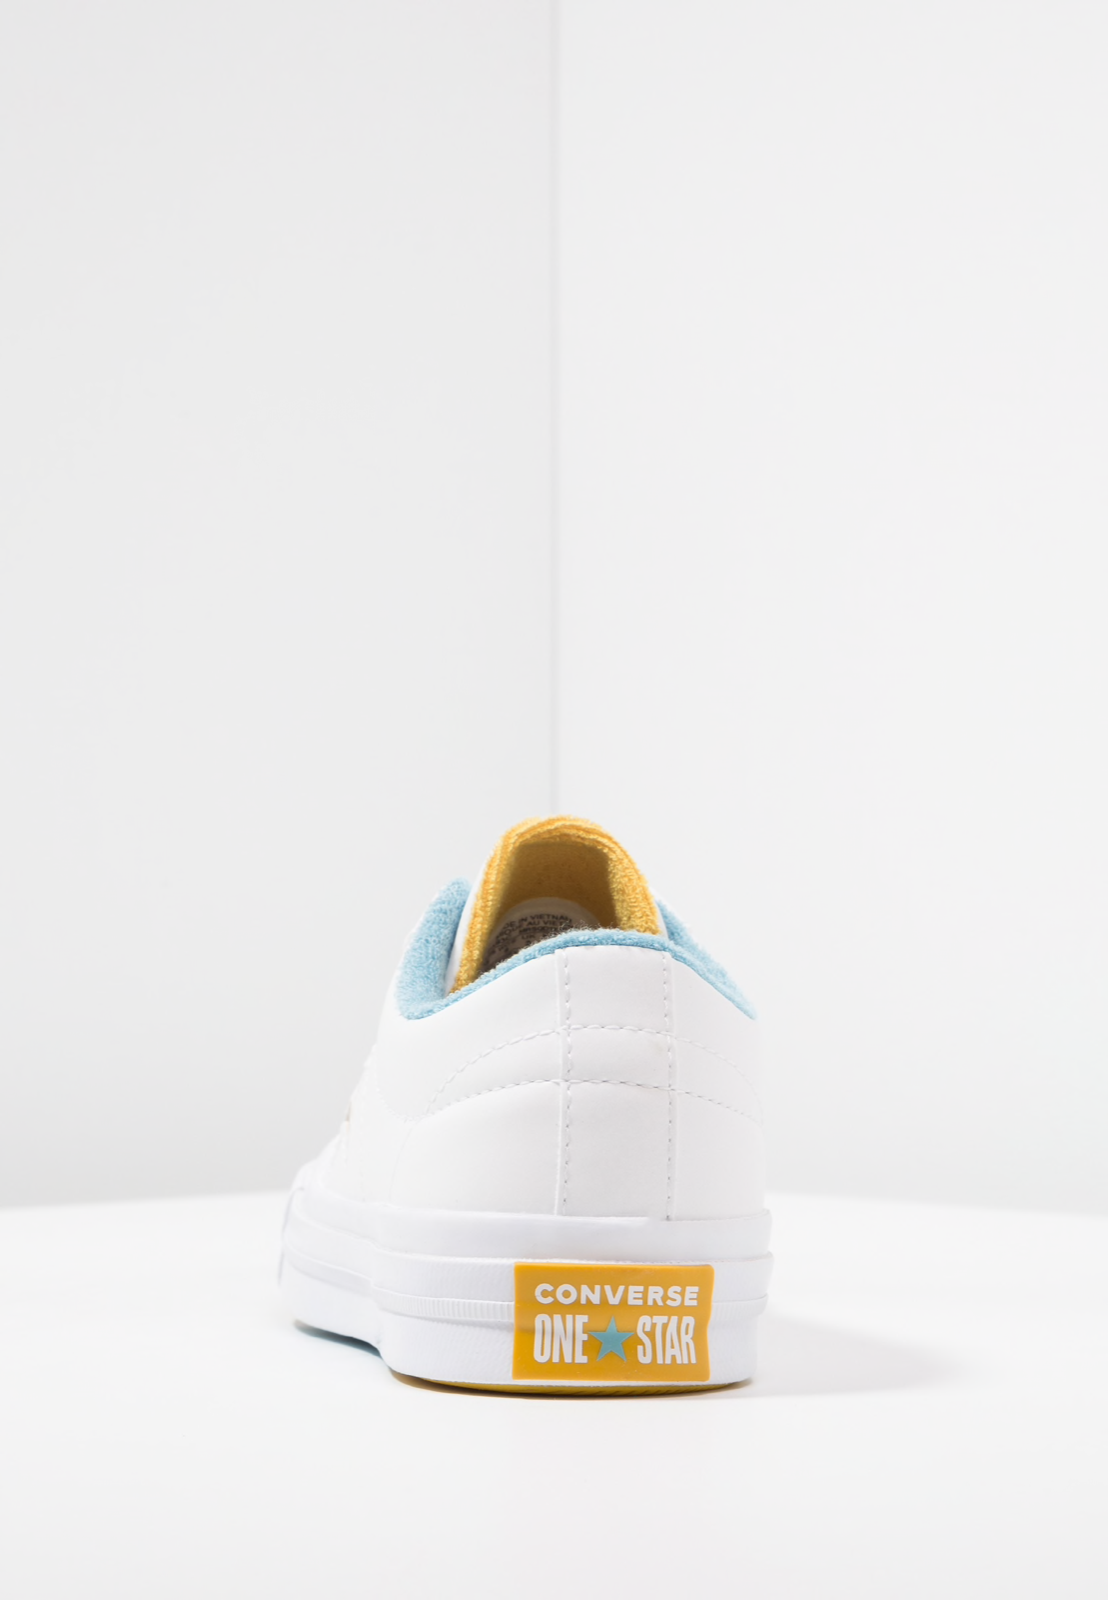 a4a555c73d7b CONVERSE Mens Grand Slam One Star OX White Yellow Leather Trainers - uk 6  eu 39